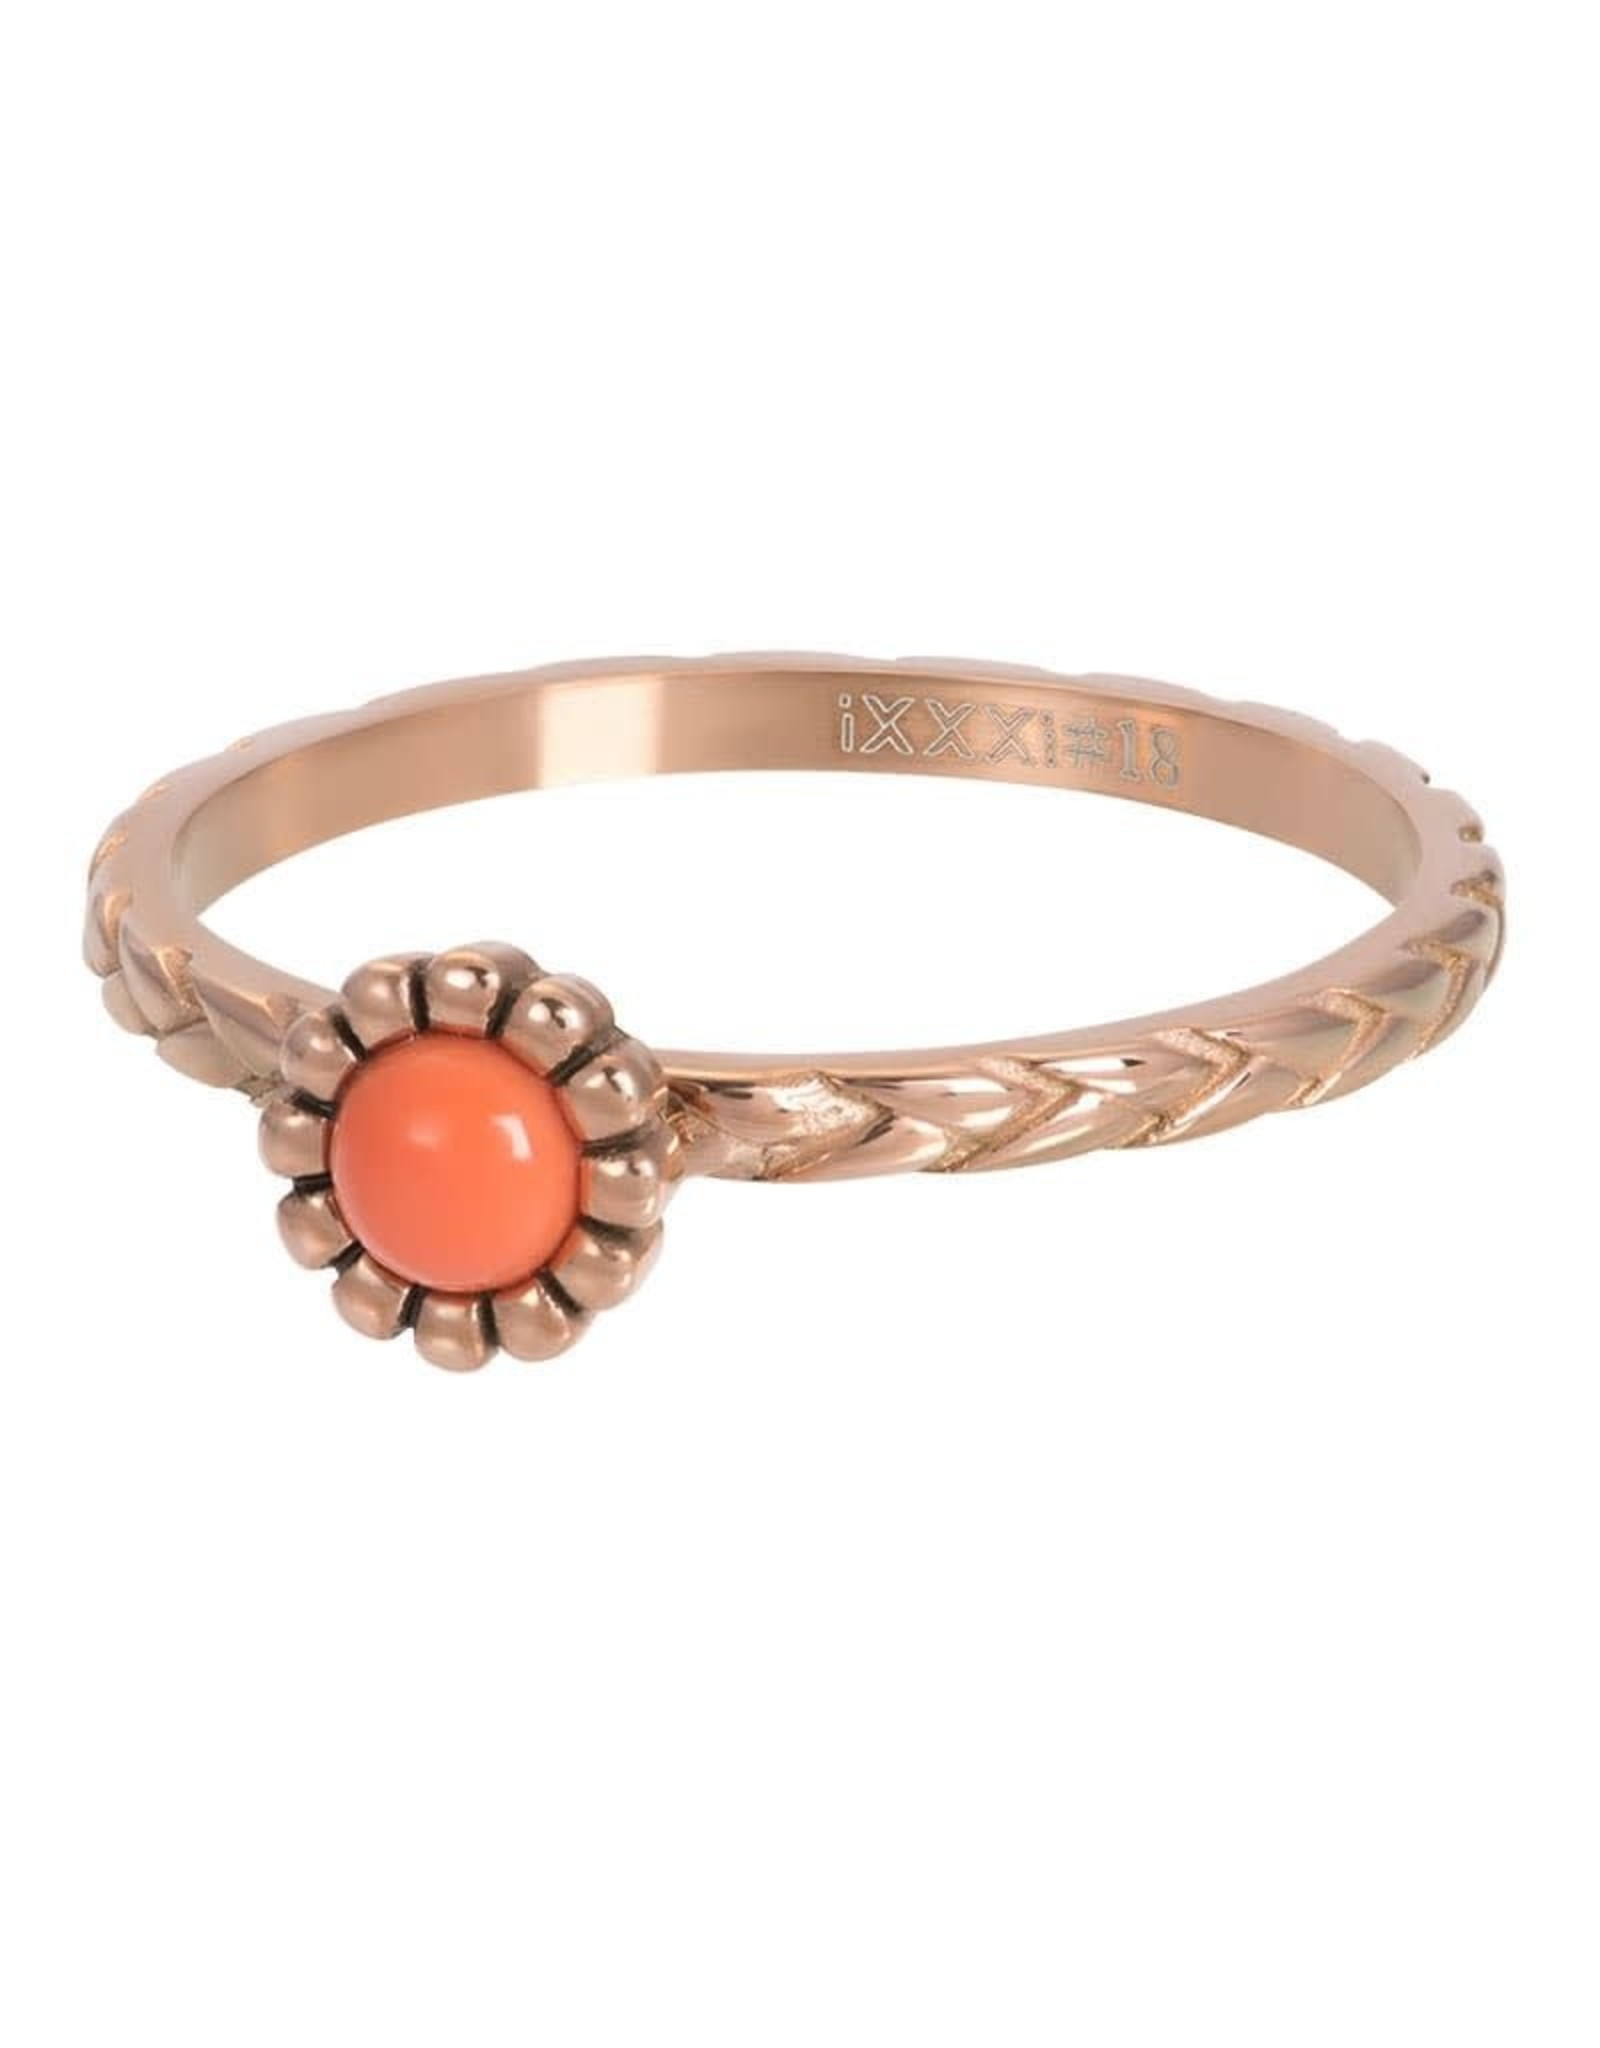 iXXXi Jewelry iXXXi vulring inspired coral - rose